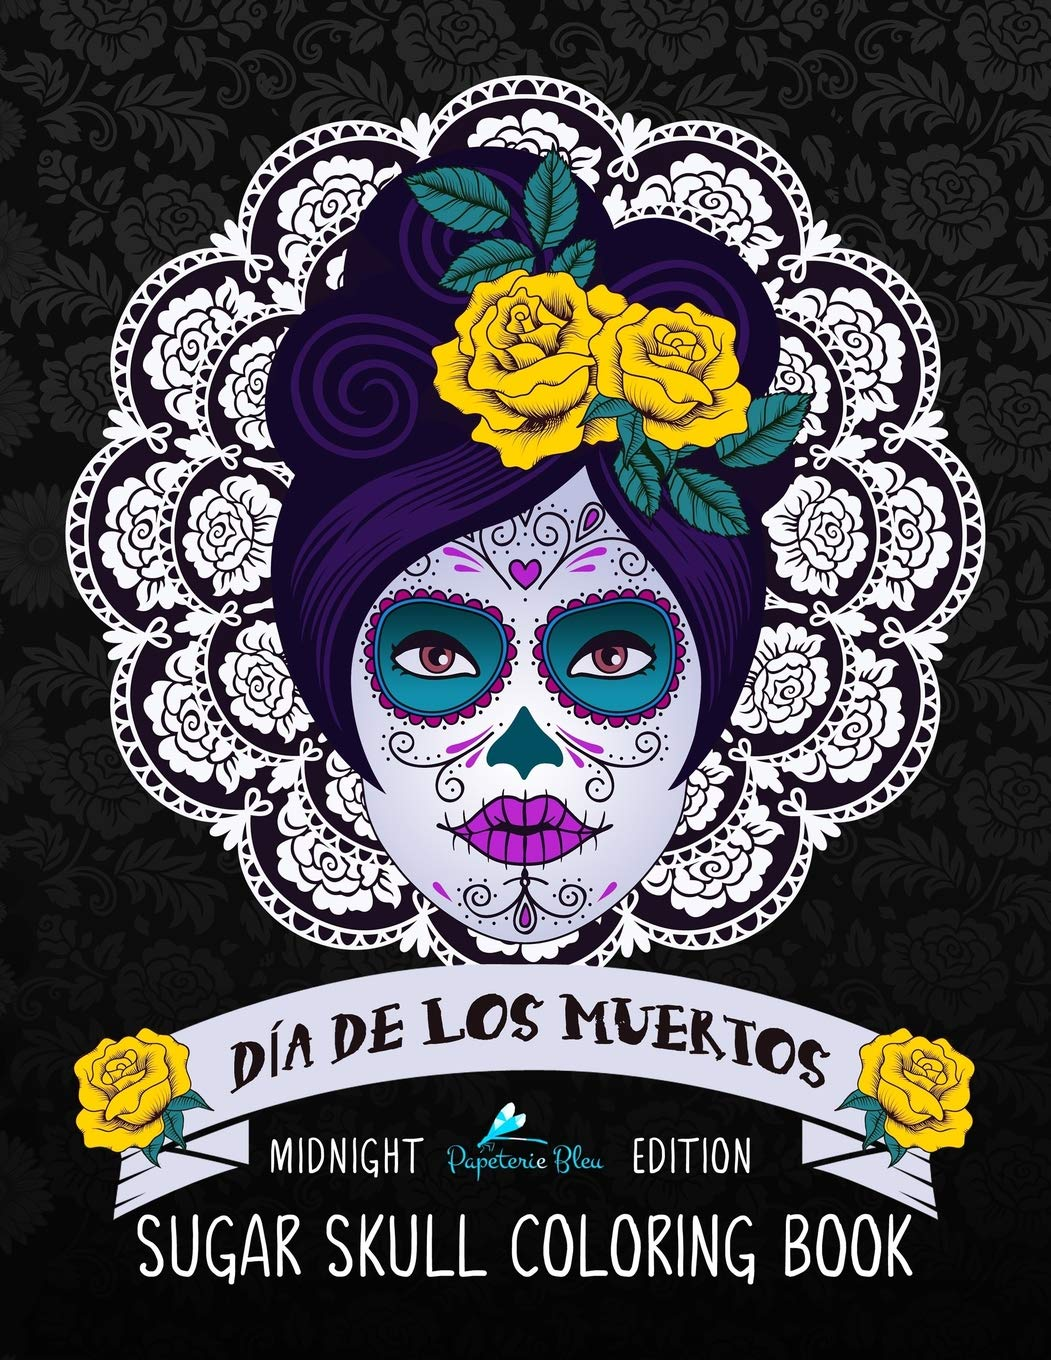 - Dia De Los Muertos Sugar Skull Coloring Book: Midnight Edition